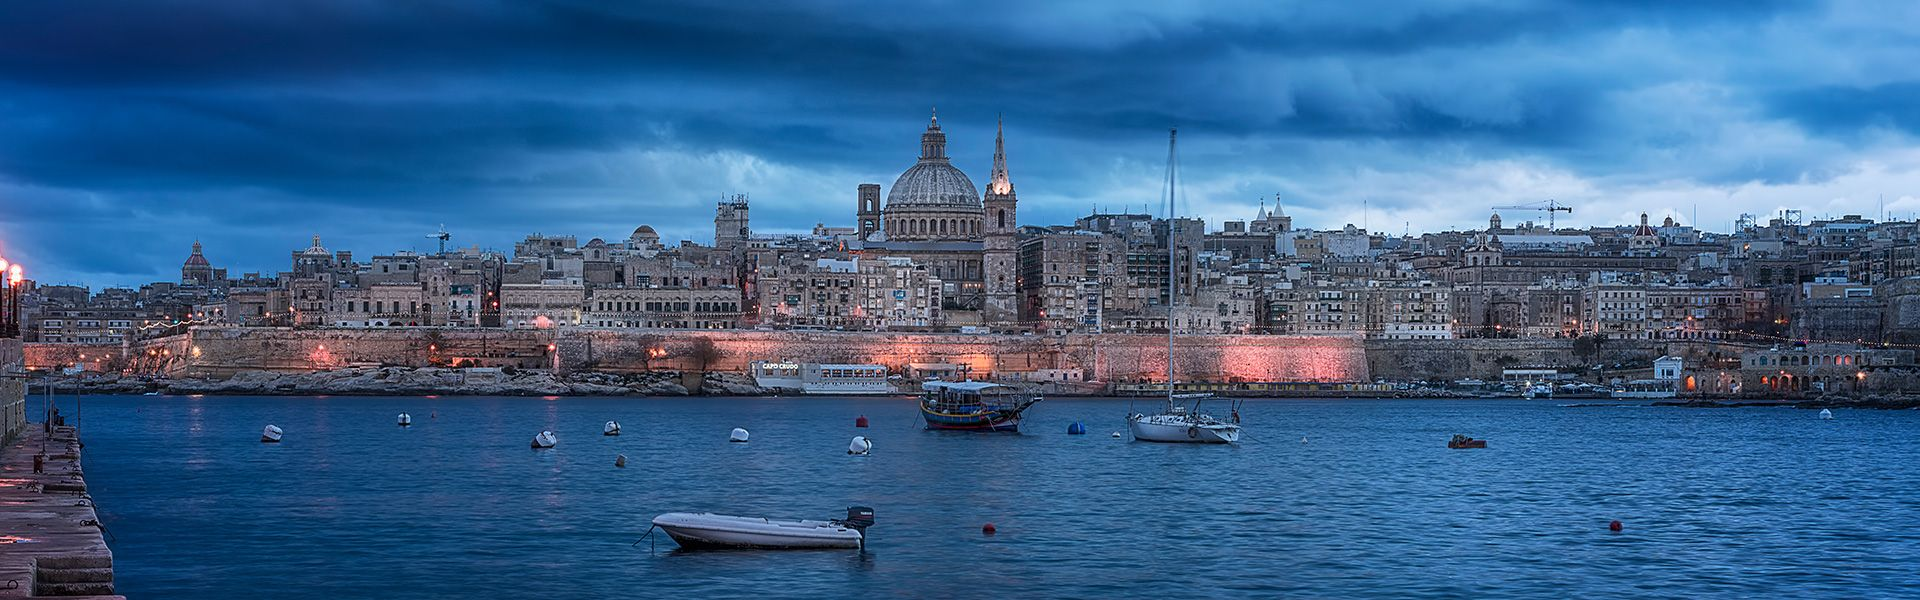 Malta skyline at dusk